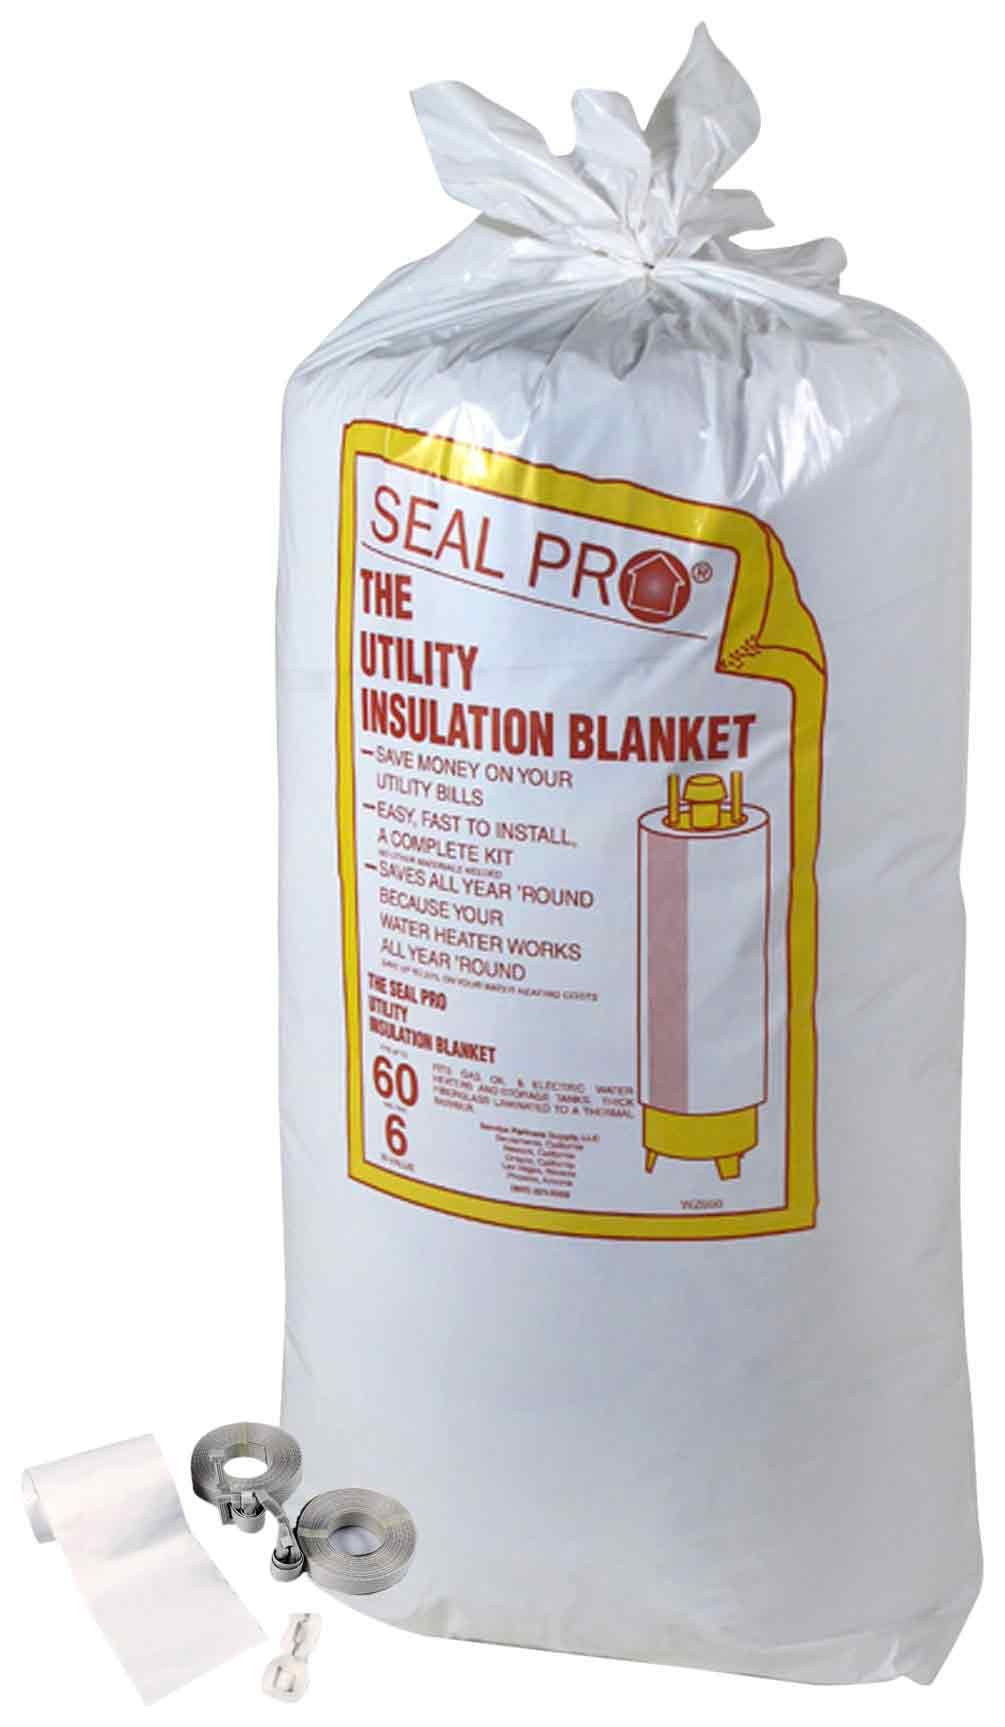 Thermo Guard WZ660 Seal Pro Water Heater Insulation Blanket, Fits Up To 60-Gallon Tanks by Thermo Guard